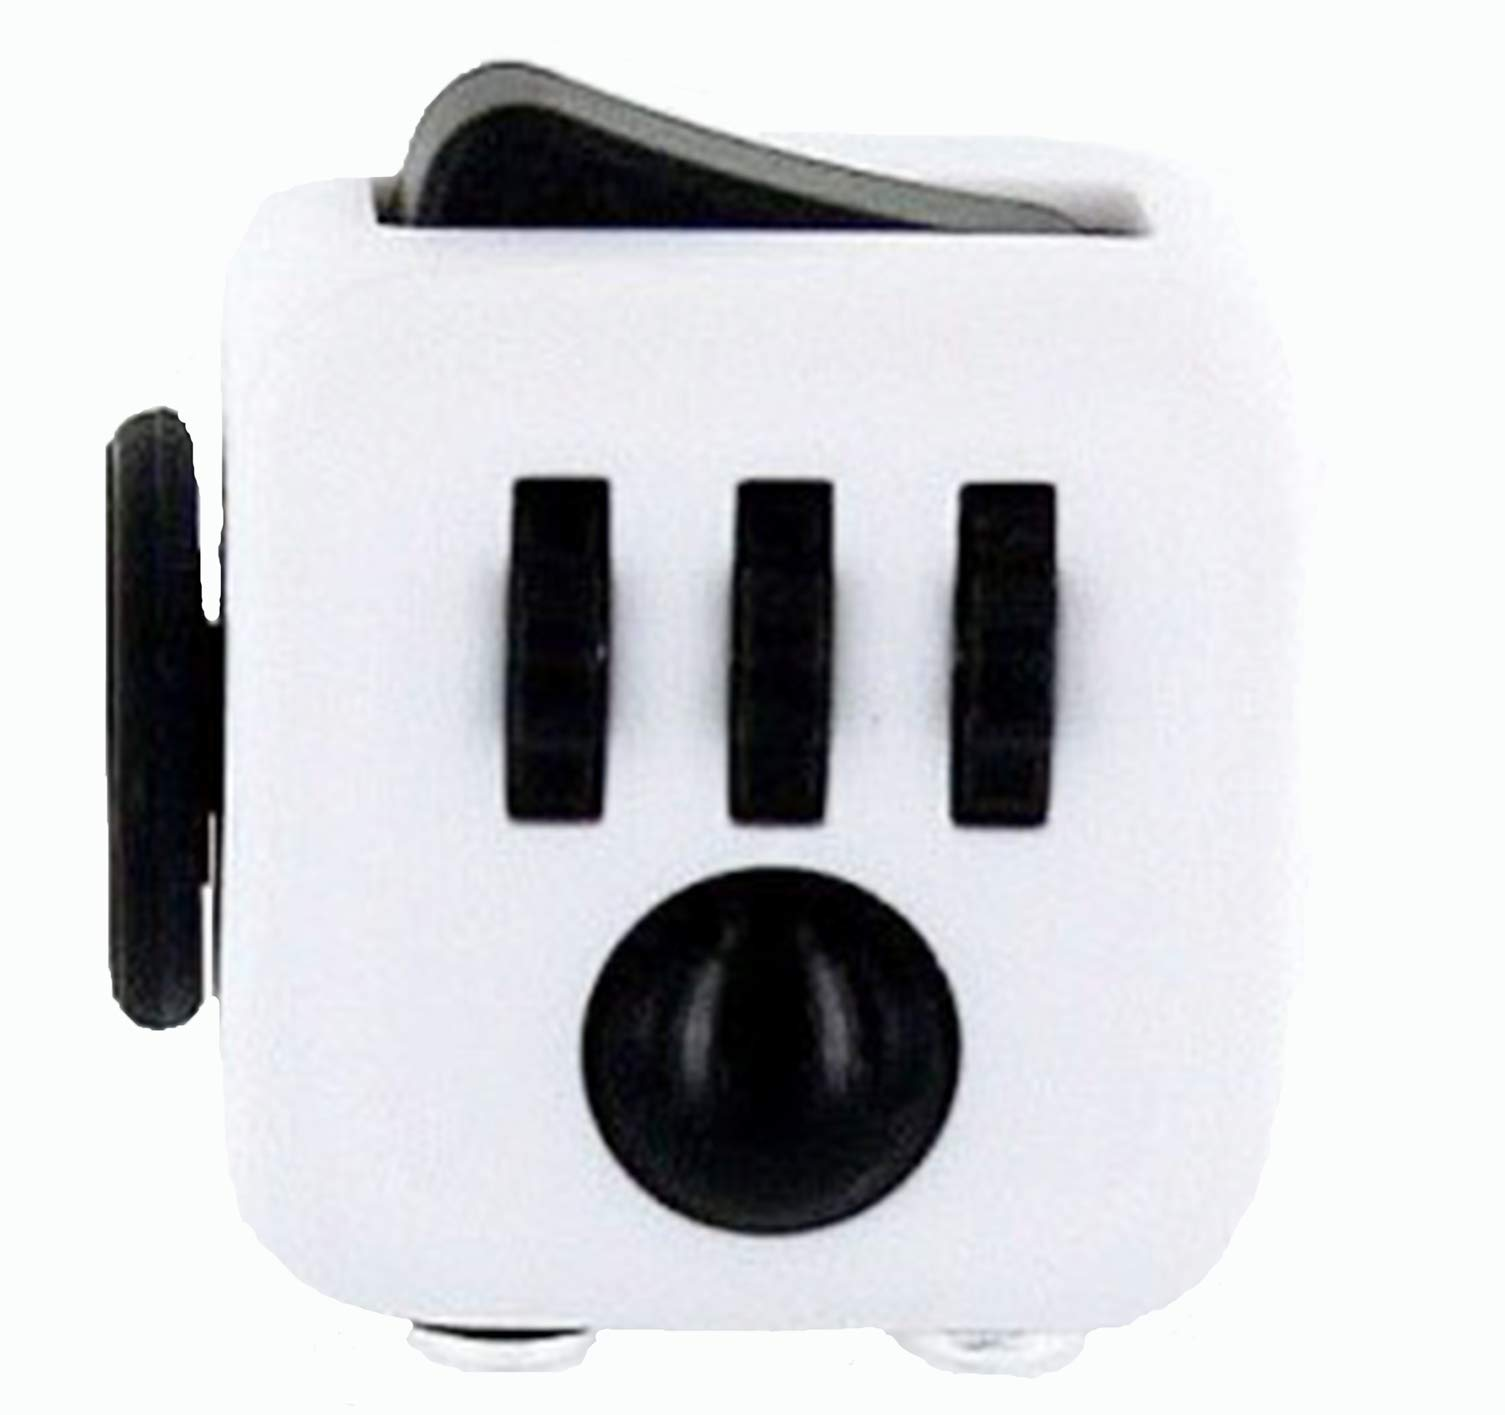 ZURU Fidget Cube by Antsy Labs White/Black - The Original and Still the Best Anti-Stress Toy, Fidget Toy Designed to Help you Focus by ZURU (Image #1)